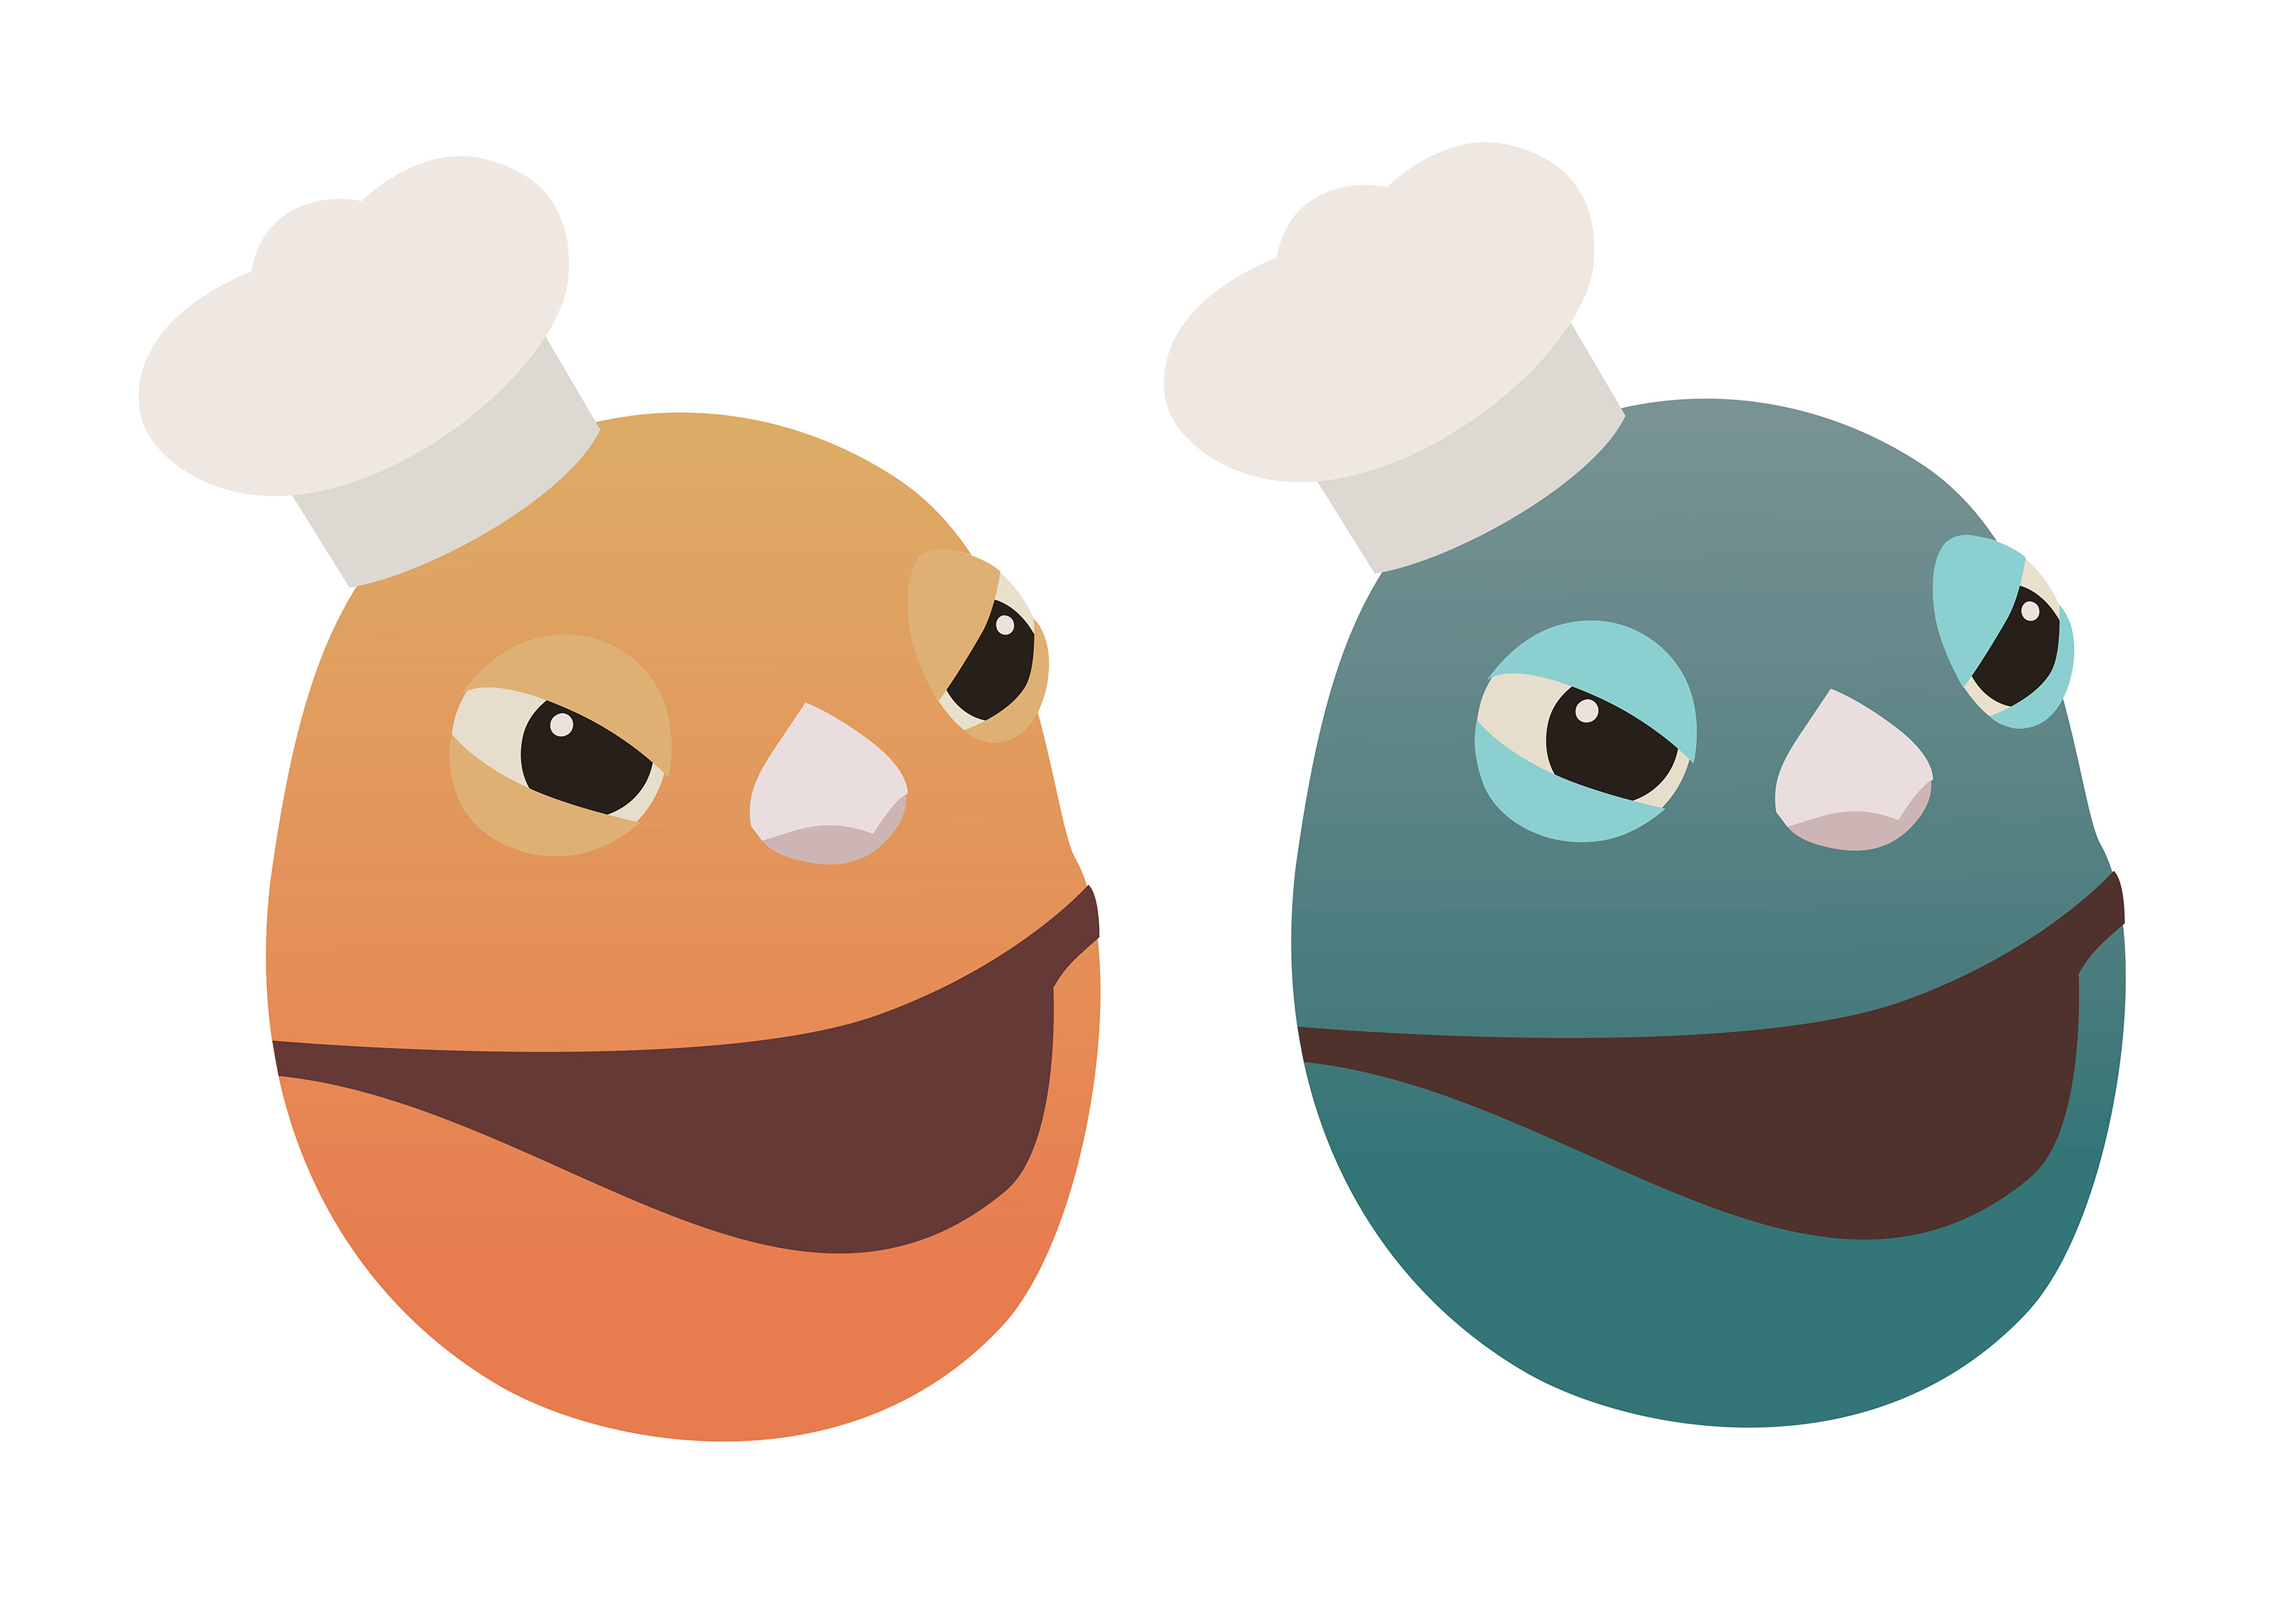 Coco & Bubu icons, created in Illustration